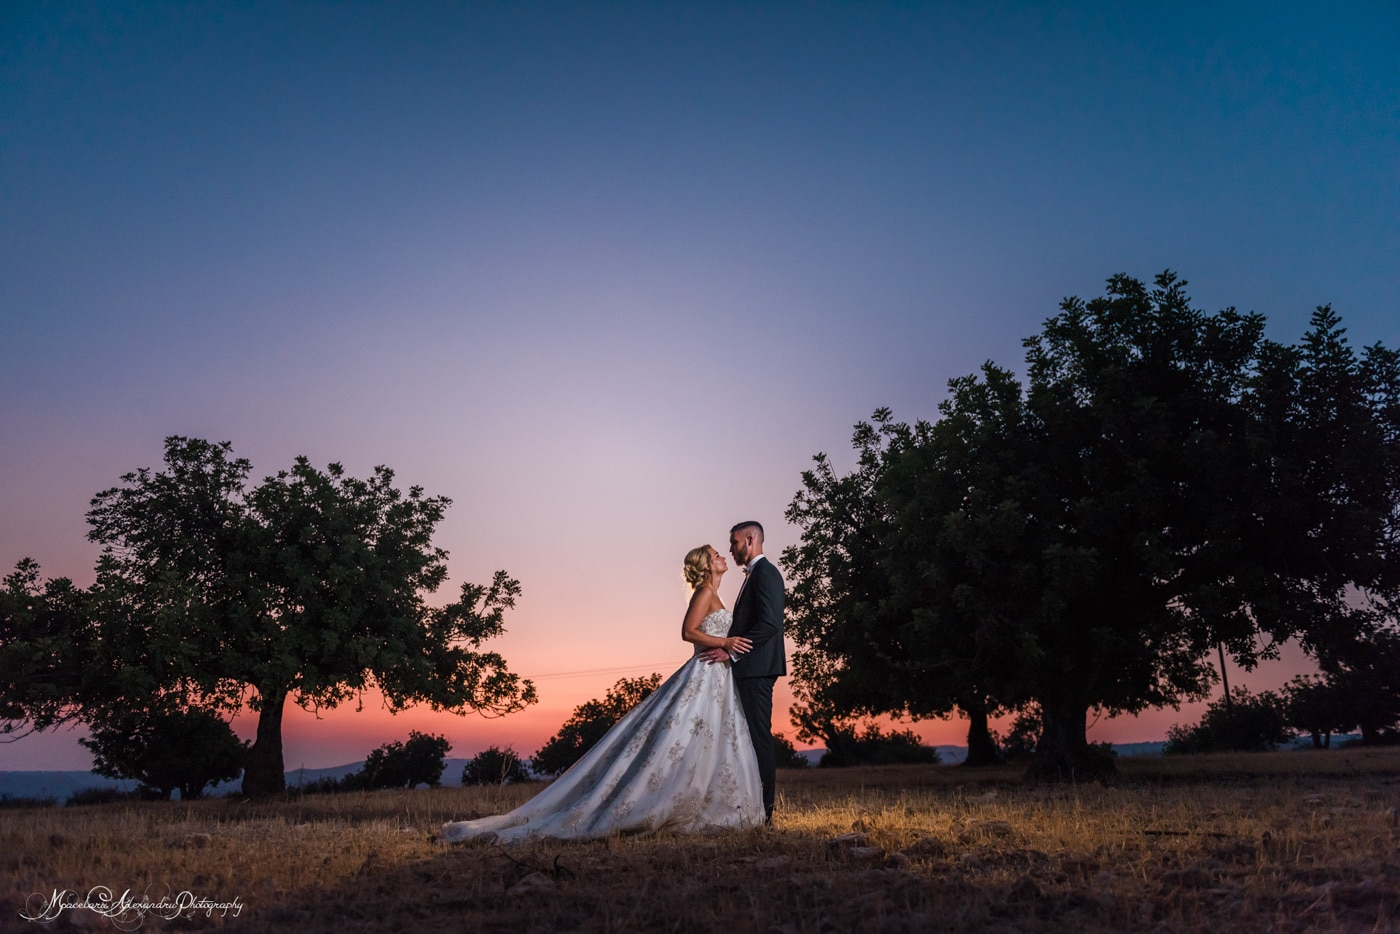 Amazing blue hour photo by Alexandru Macelaru Wedding photos Cyprus